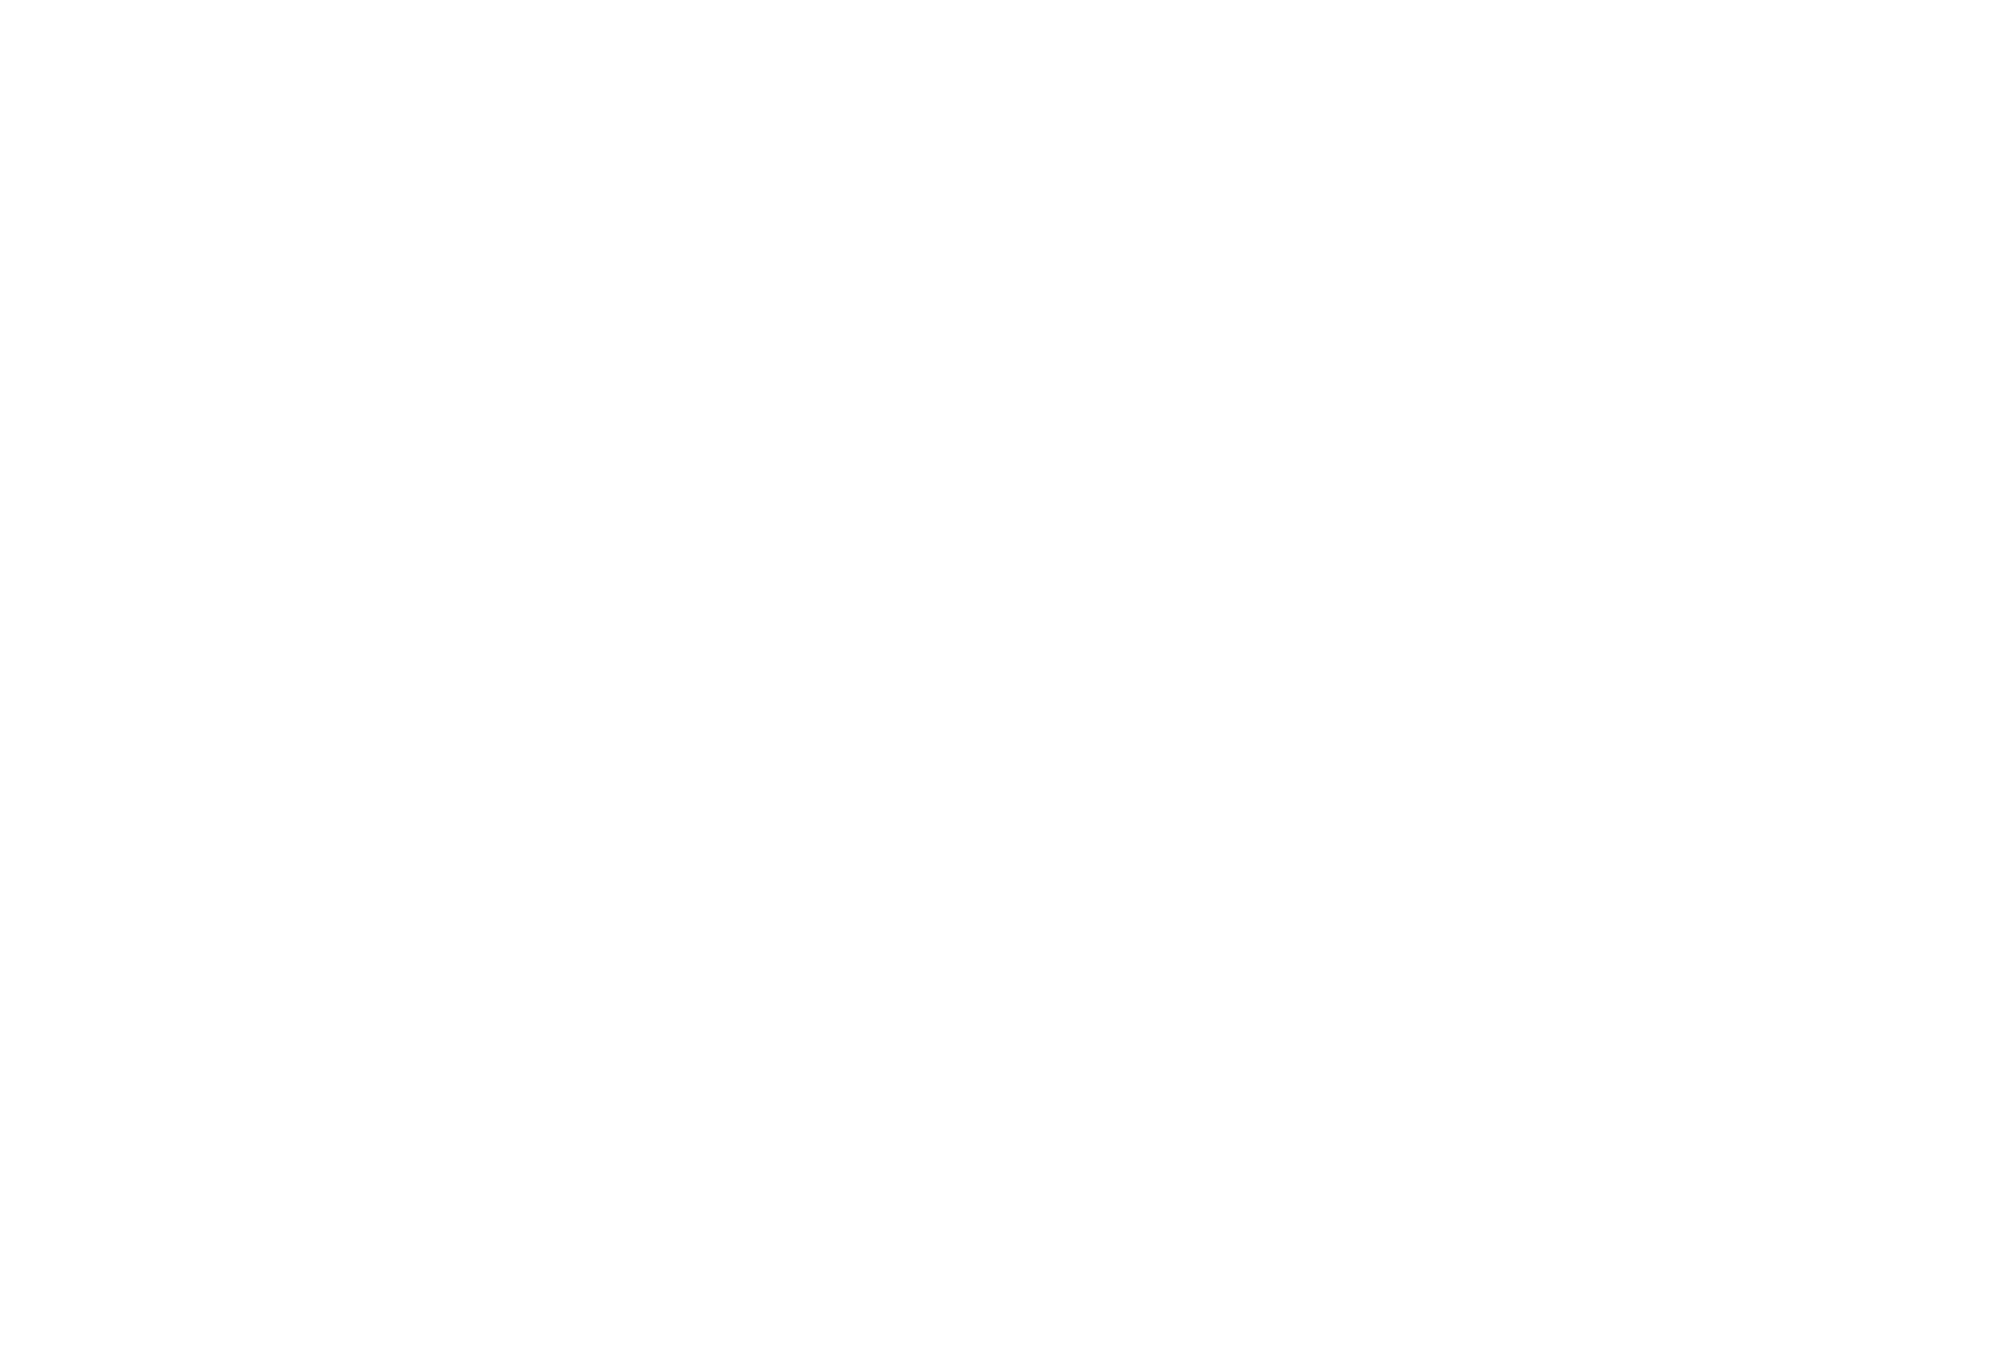 South Country Coop